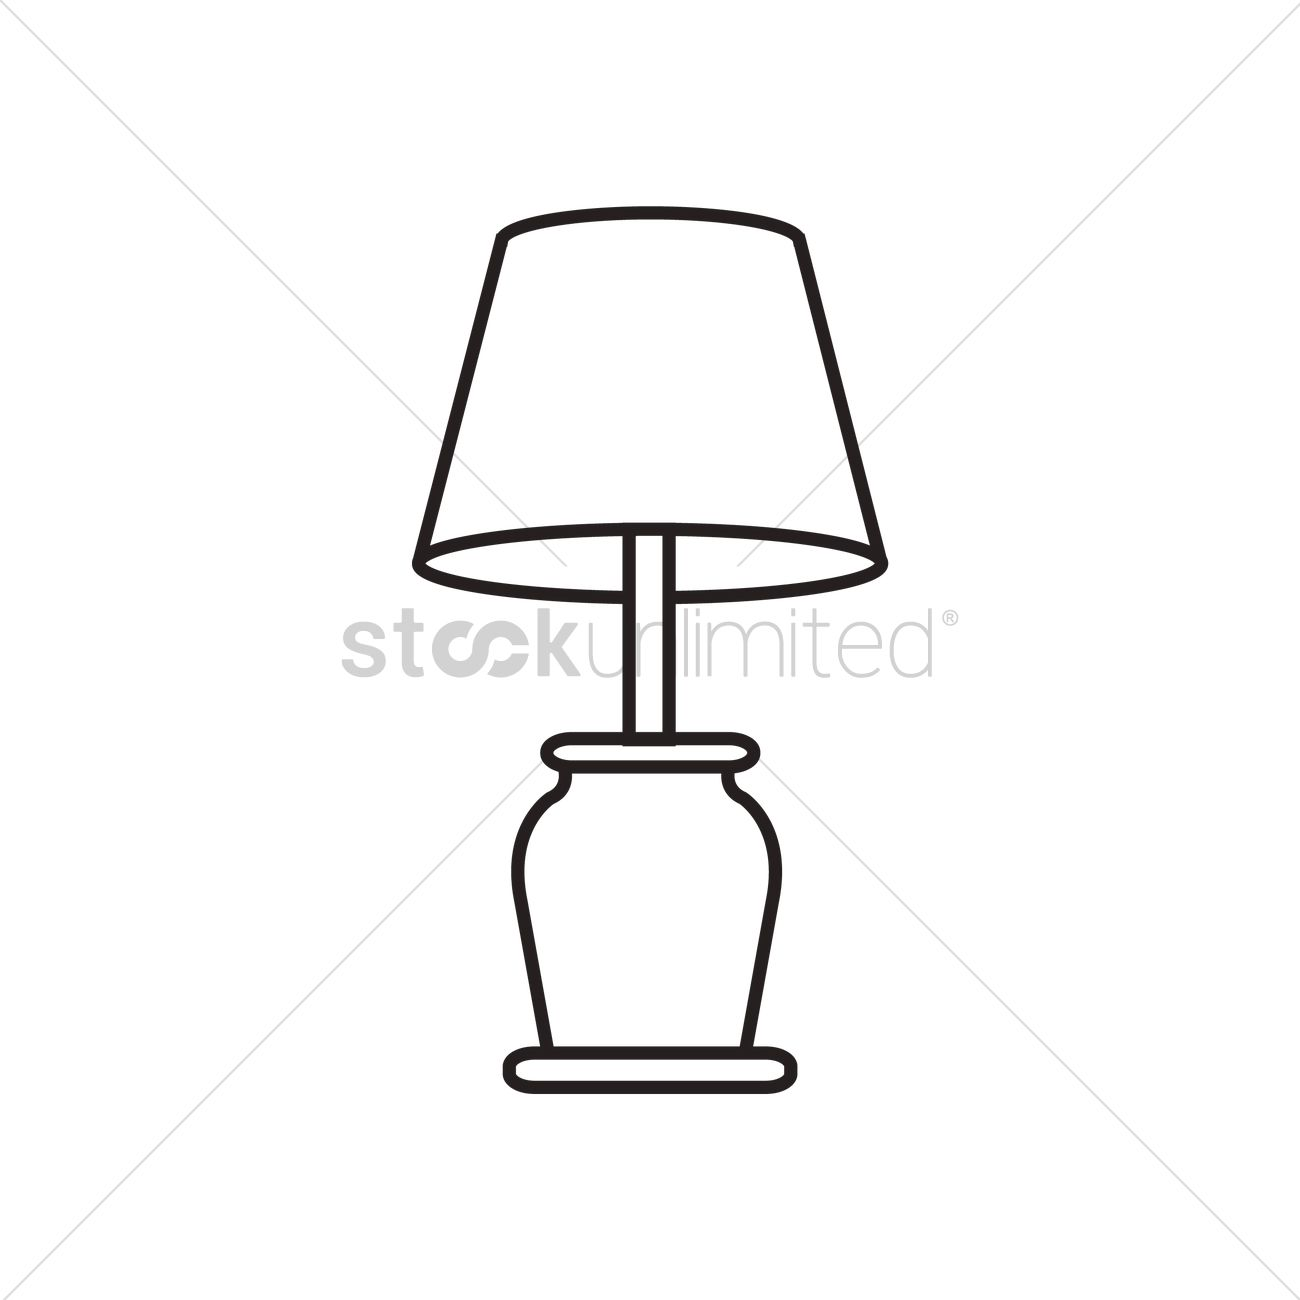 Table lamp Vector Image - 1465673 | StockUnlimited for Clipart Lamp Black And White  575lpg